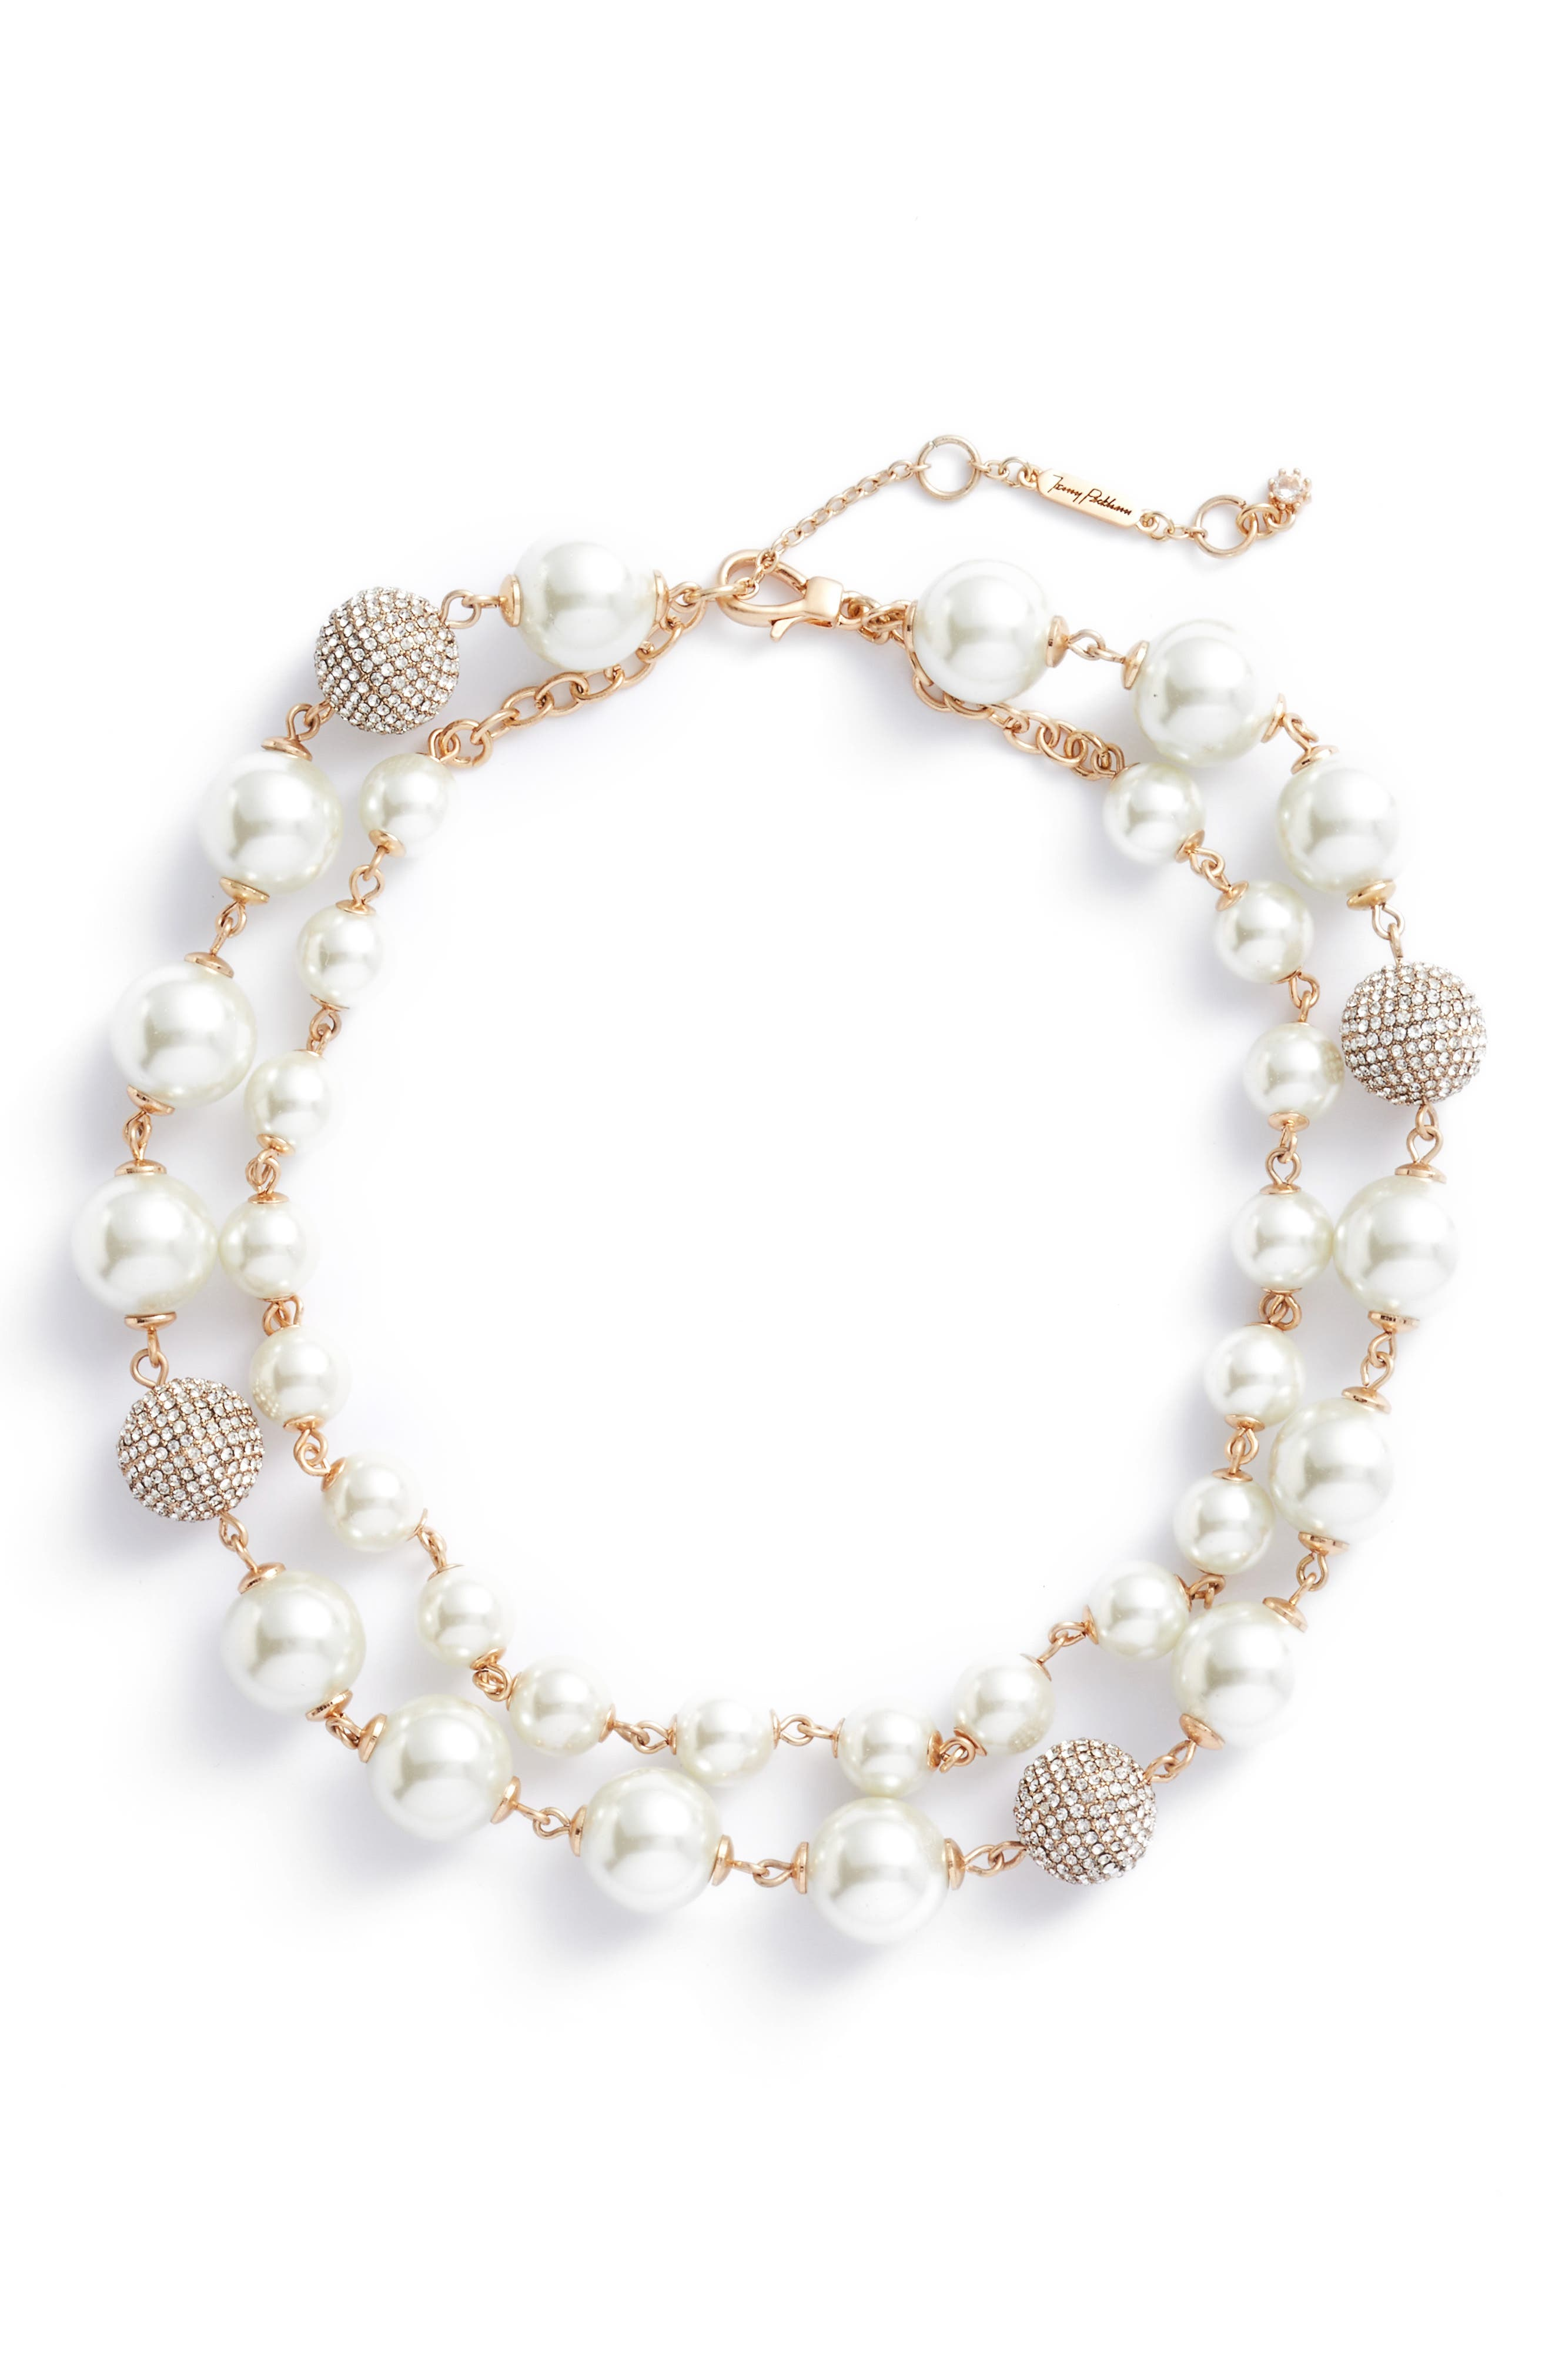 Multistrand Imitation Pearl Necklace,                             Main thumbnail 1, color,                             710